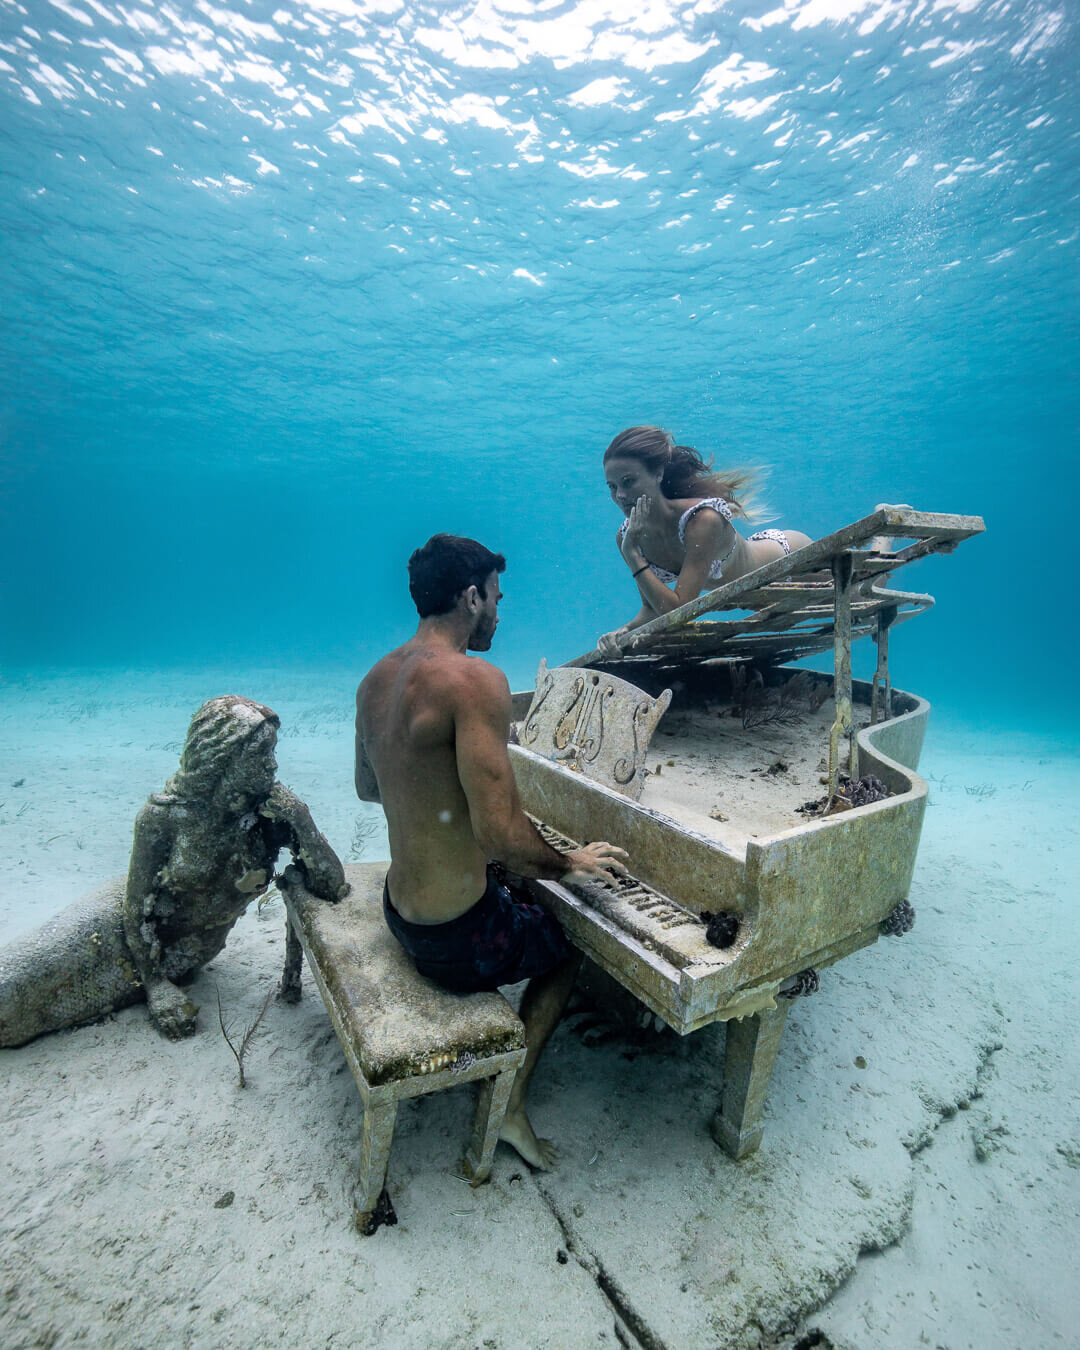 David Langlois  playing the piano for  Lauren Landers  at The Musician. David and Lauren run charter trips through The Bahamas on their sailboat  Boomsharkalaka . Photo by:  Quin Schrock .